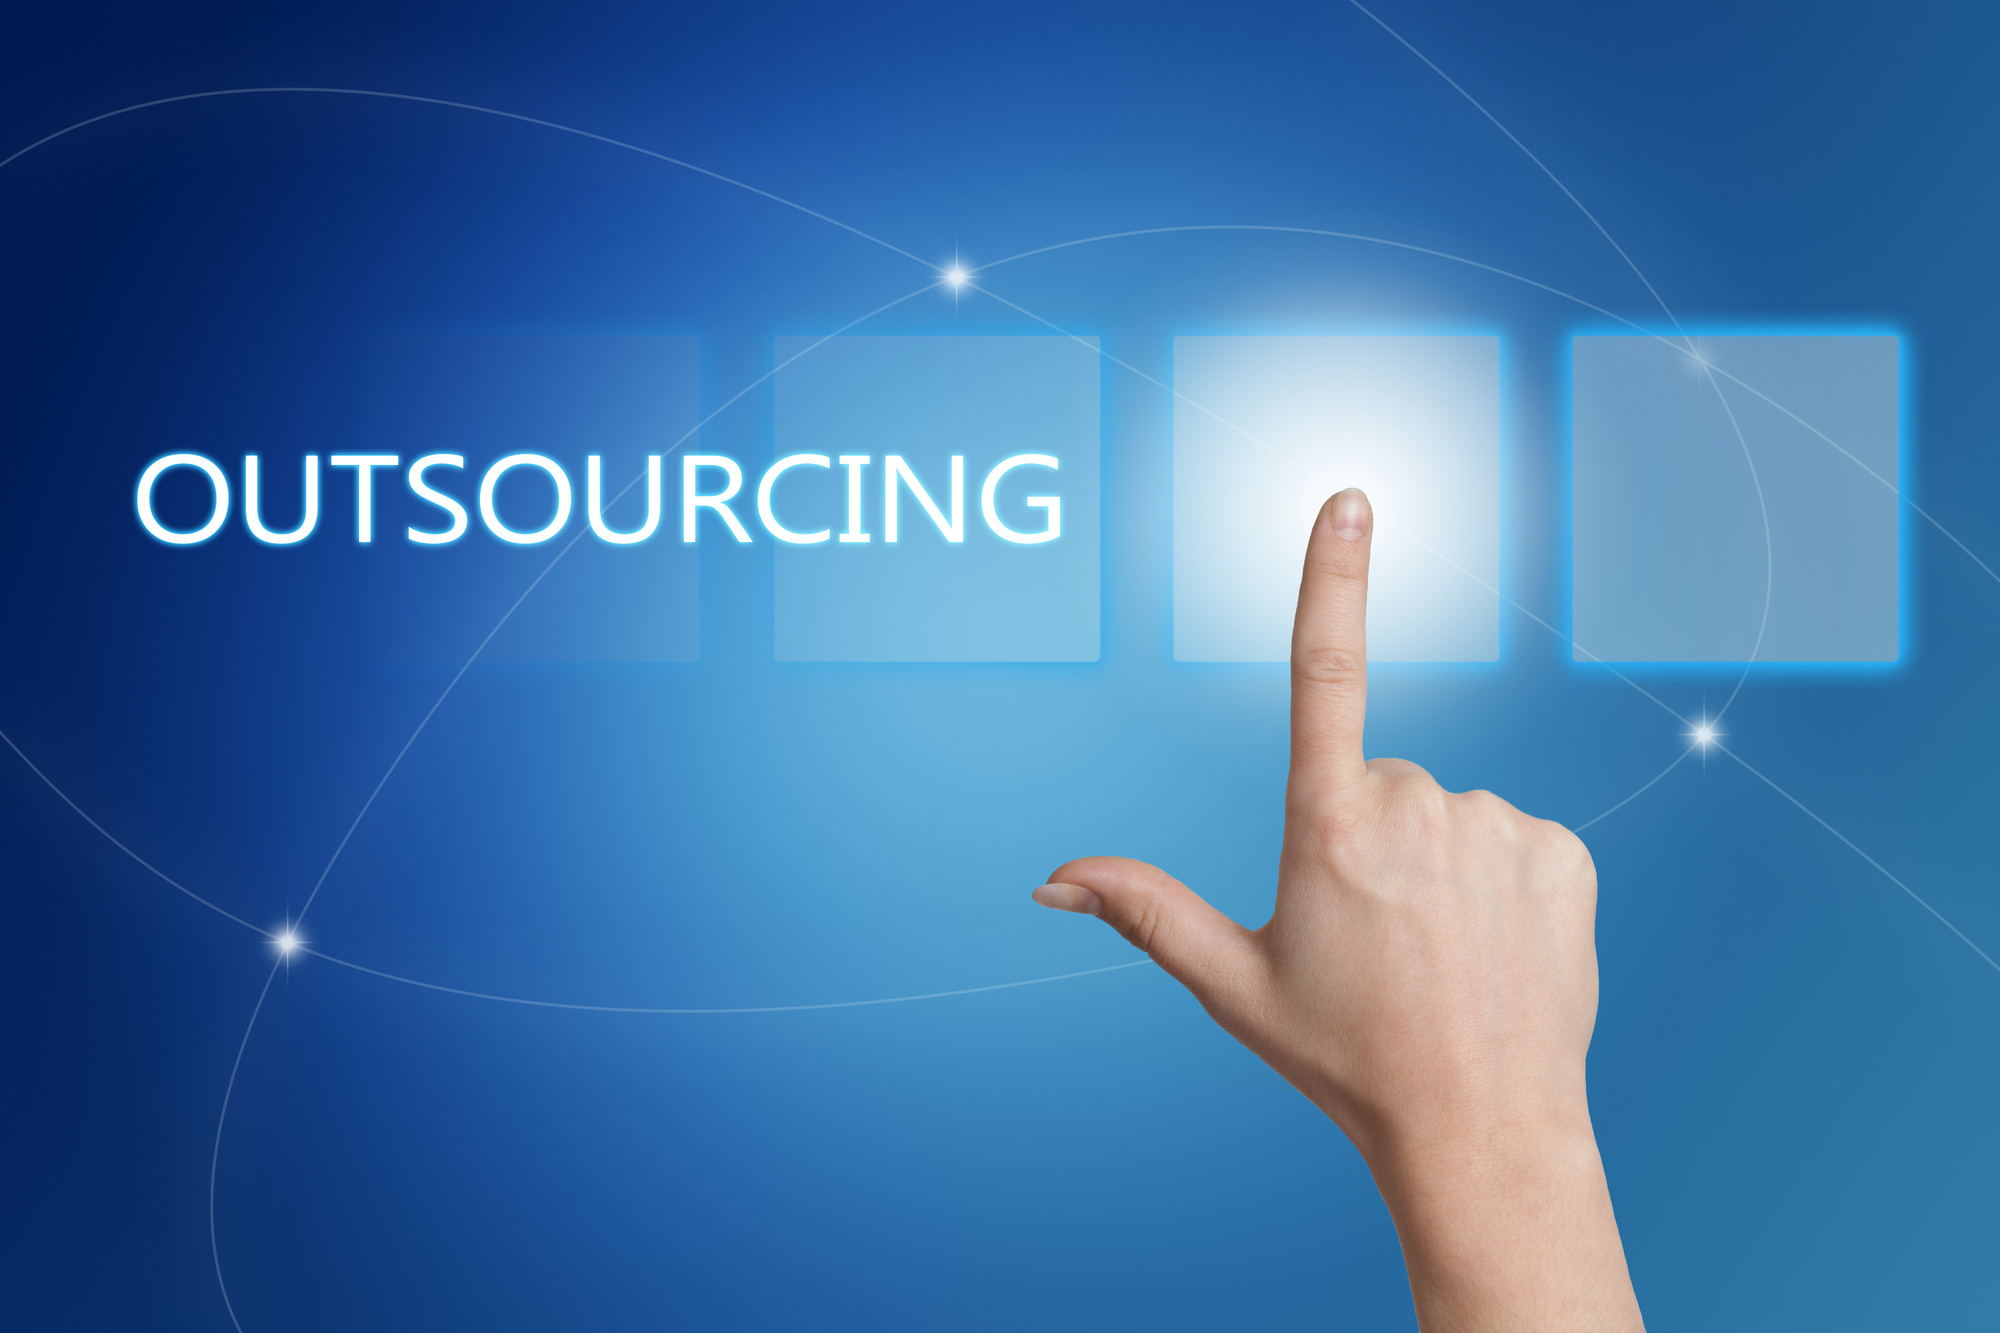 What Are the Business Benefits of Outsourcing Labor in 2021?